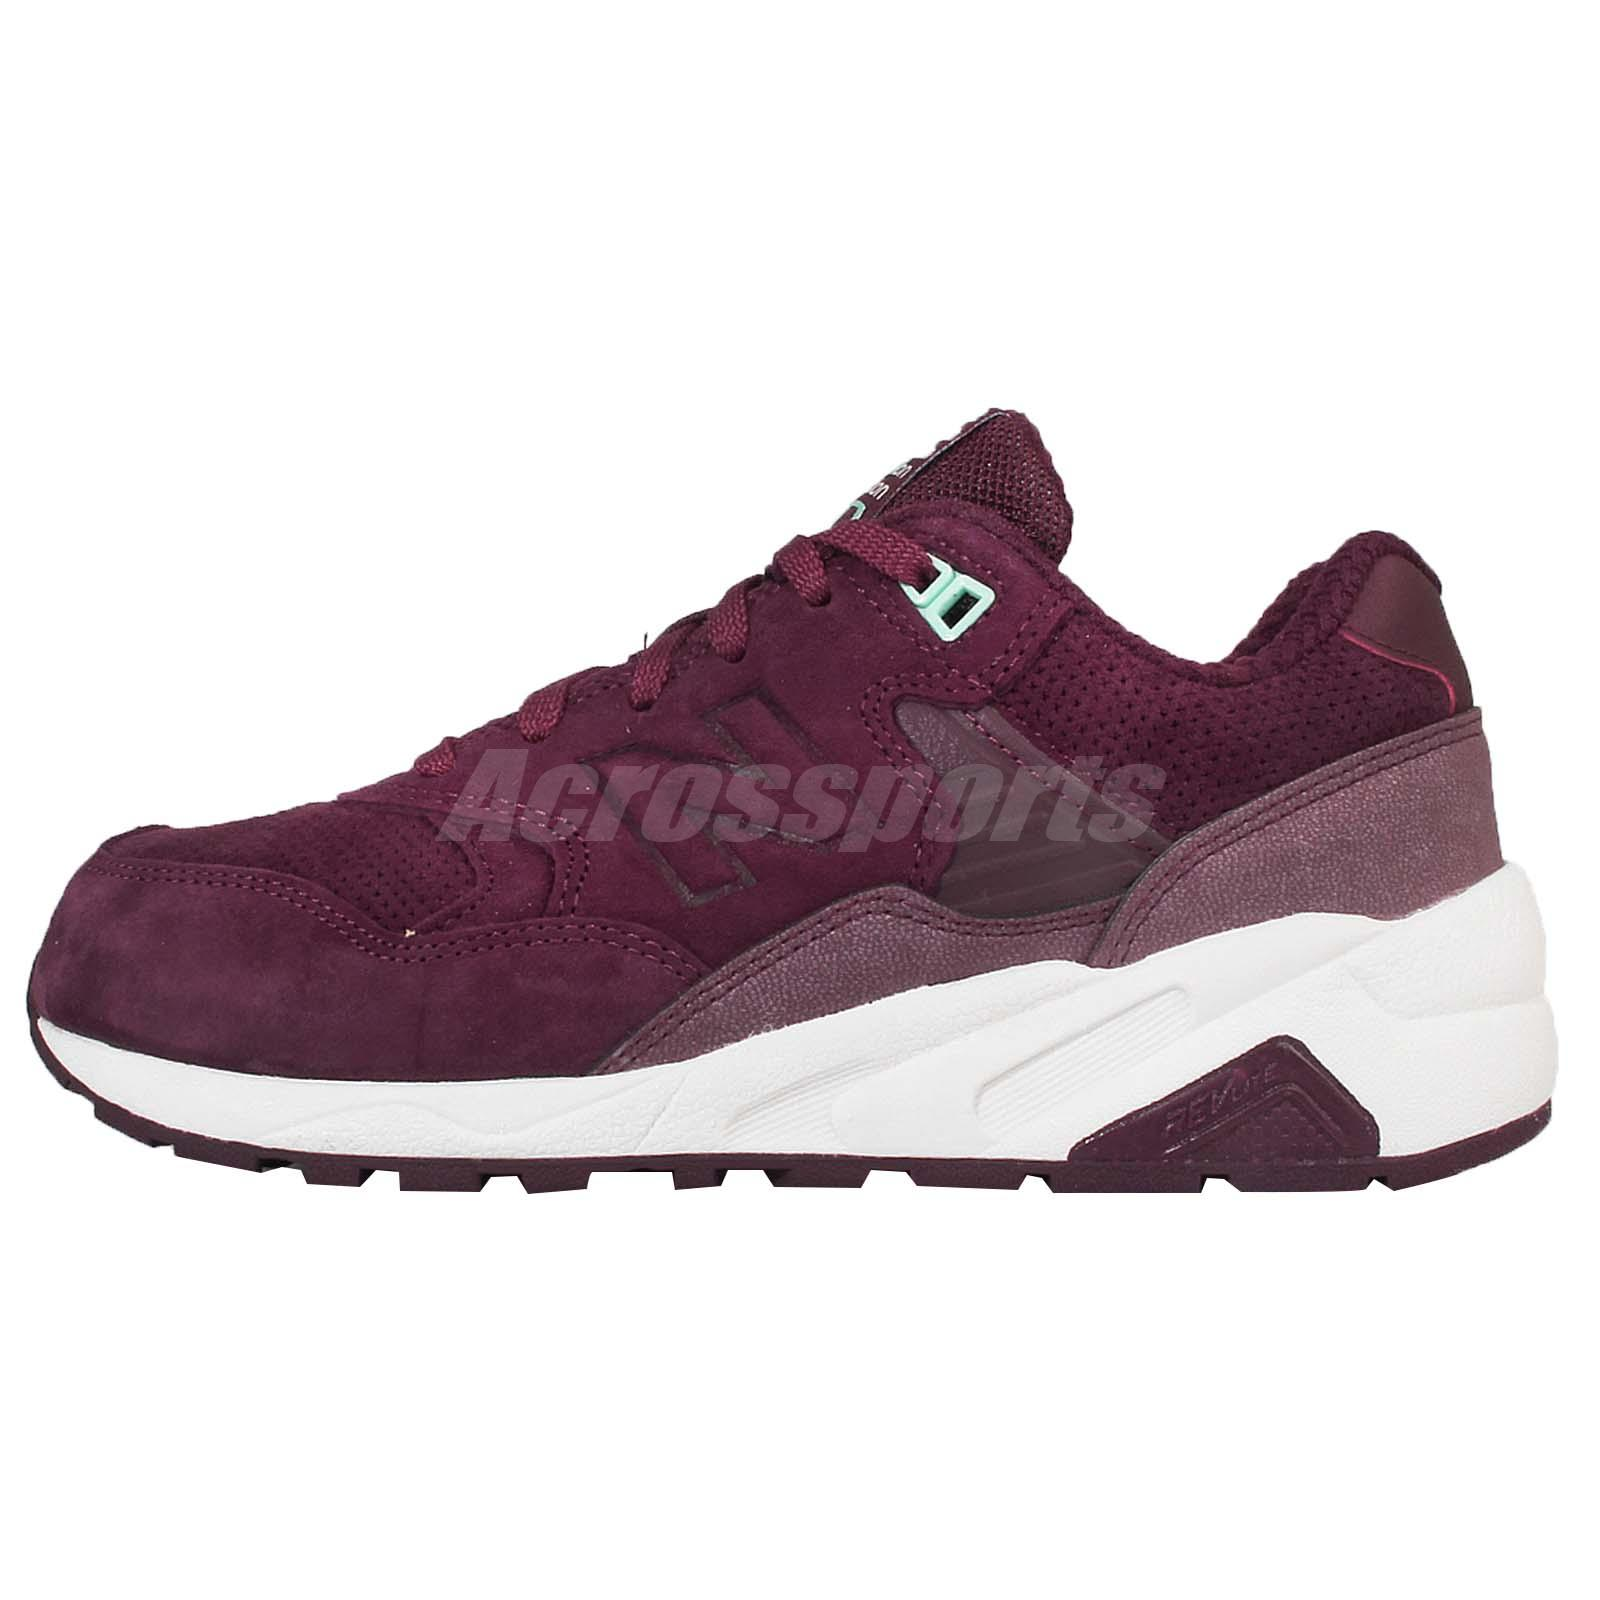 Retro Suede Nikes For Women Azodin Kd 2 For Sale  6f3a0cfef